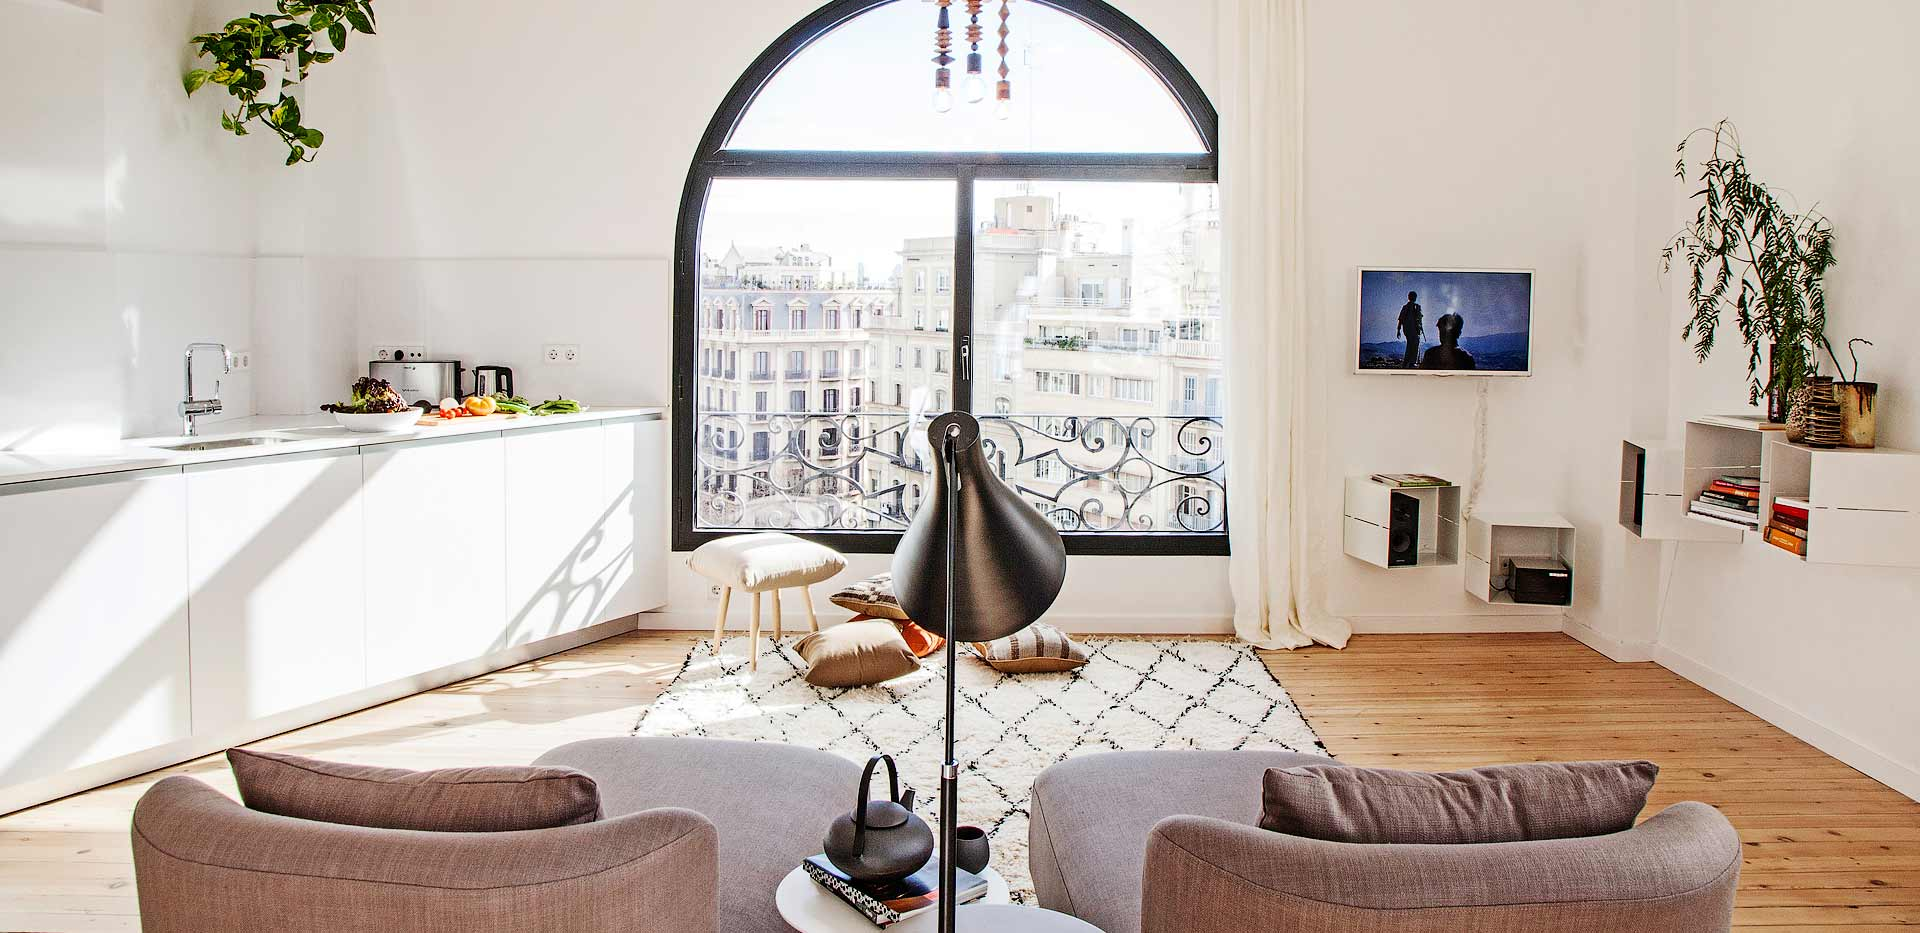 Eixample Penthouse in Barcelona, Spain   Holiday apartments